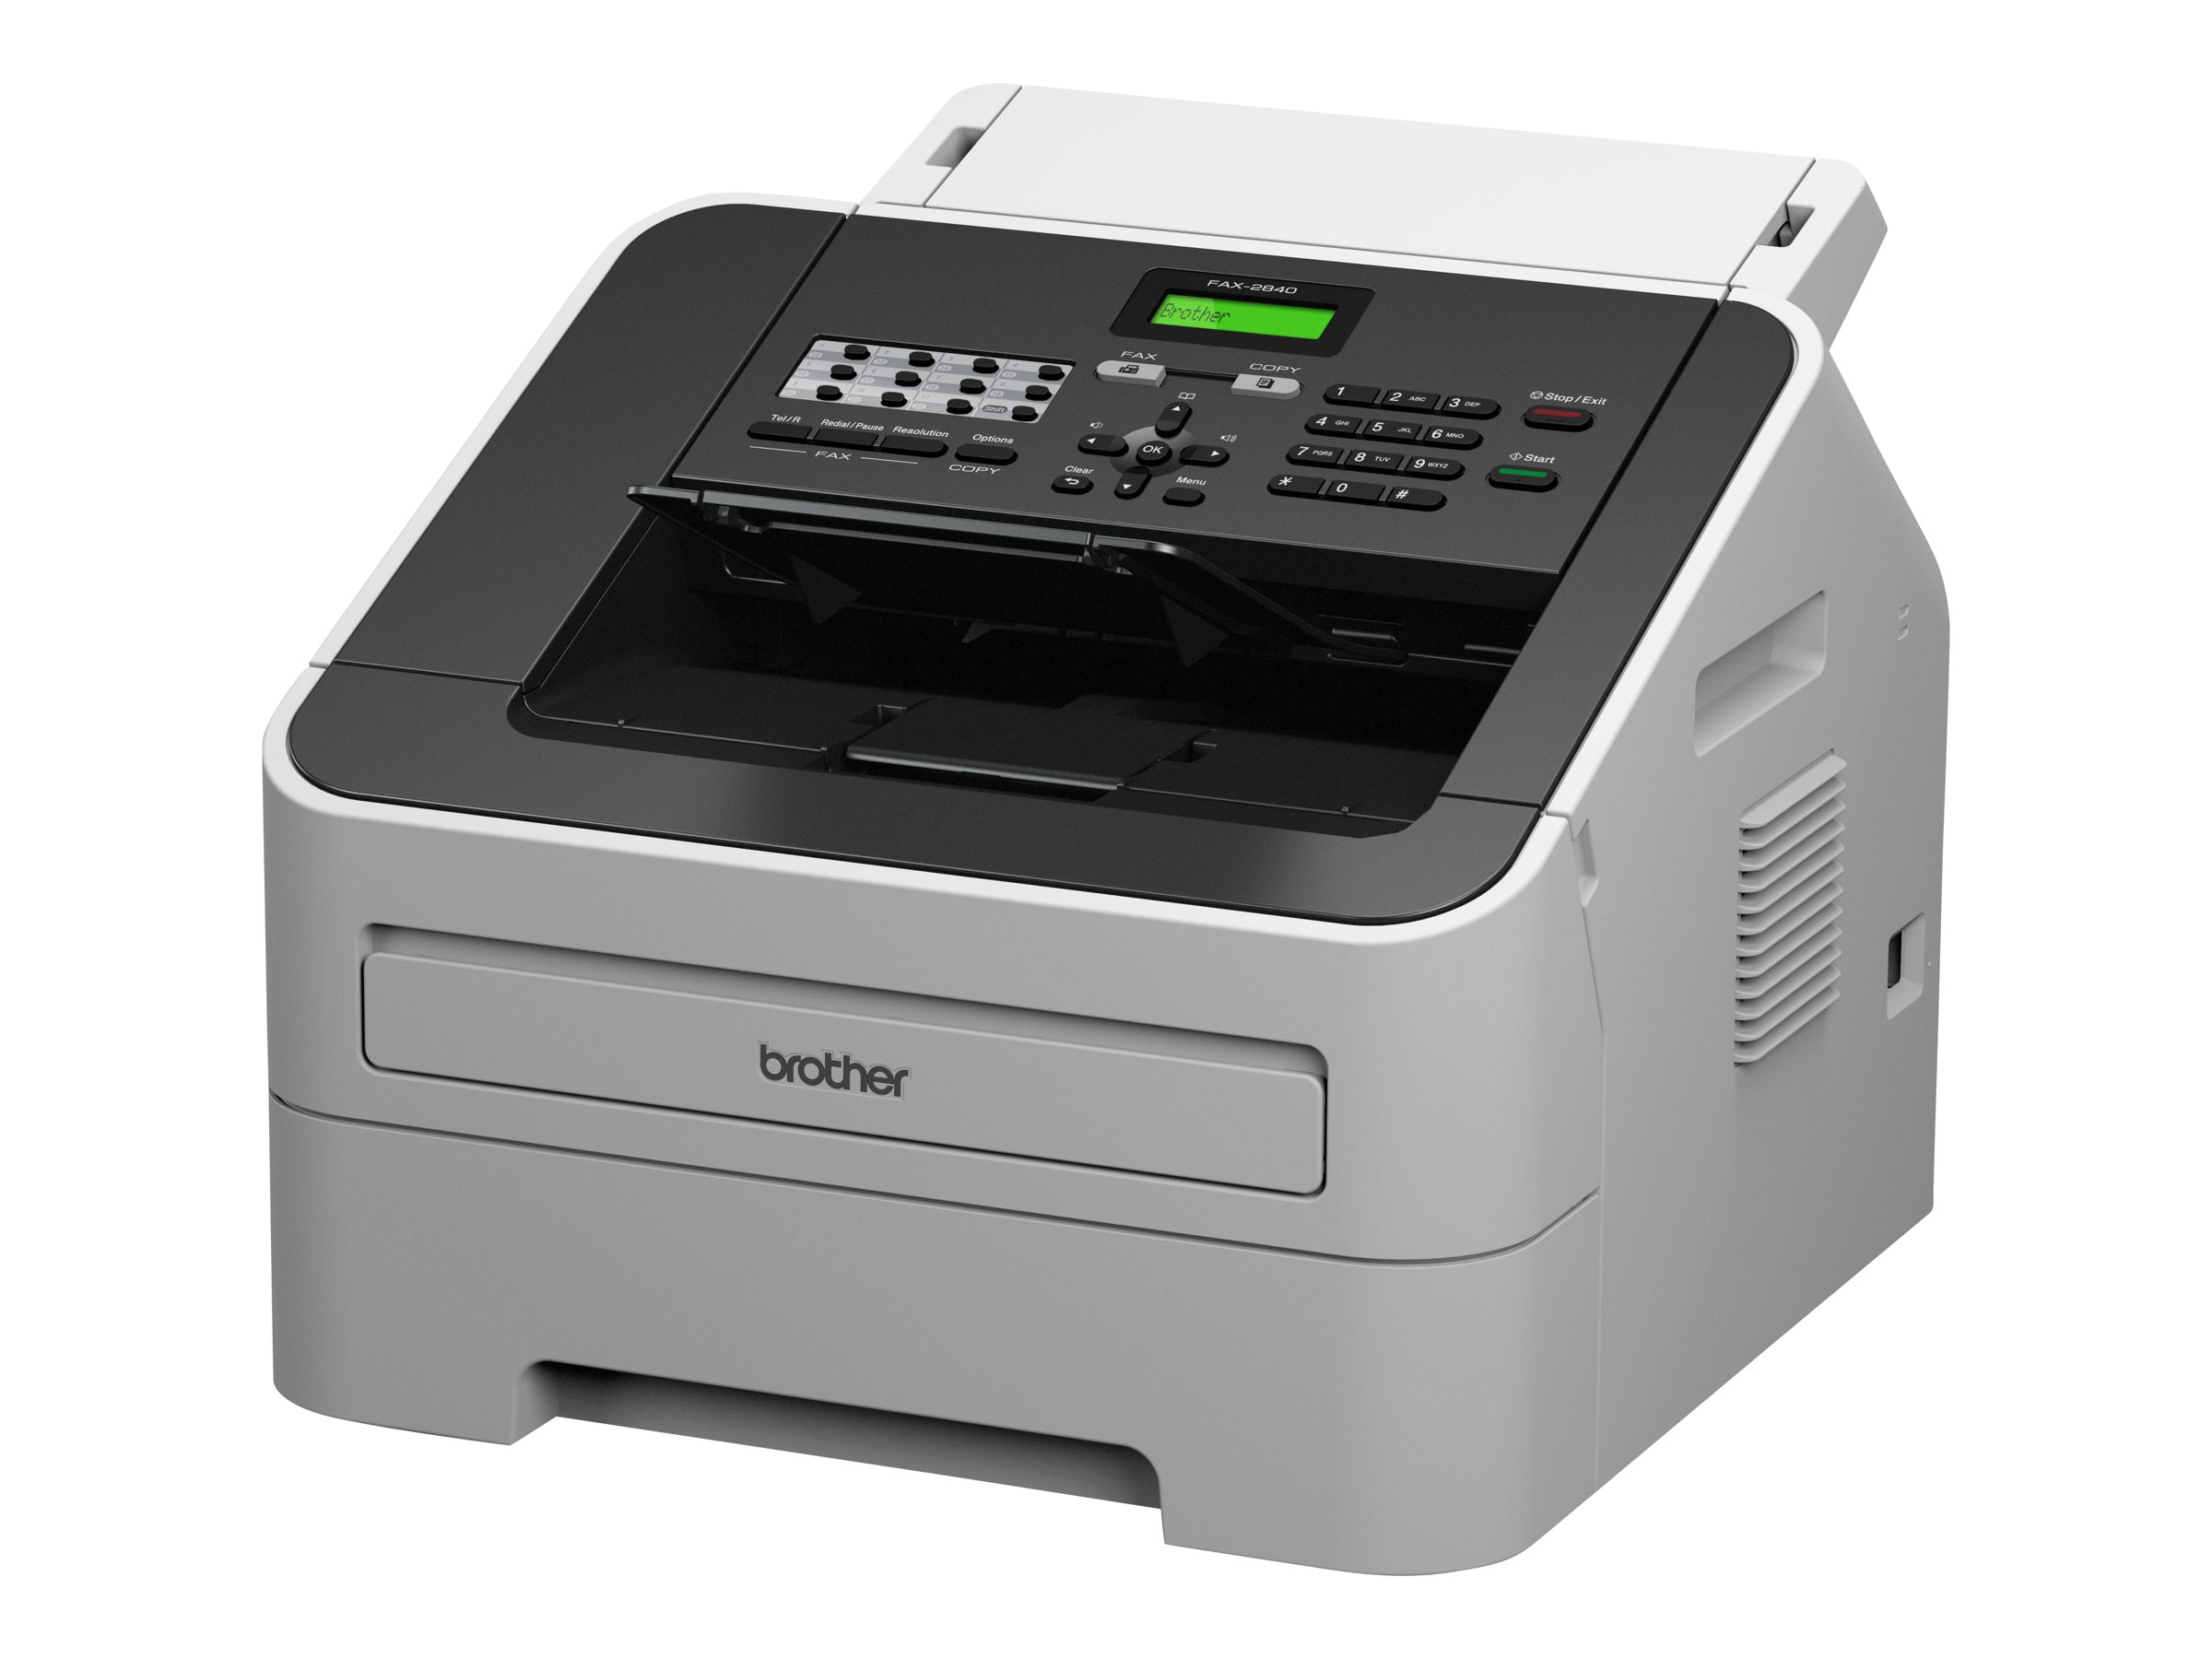 Brother FAX-2840 Image 1